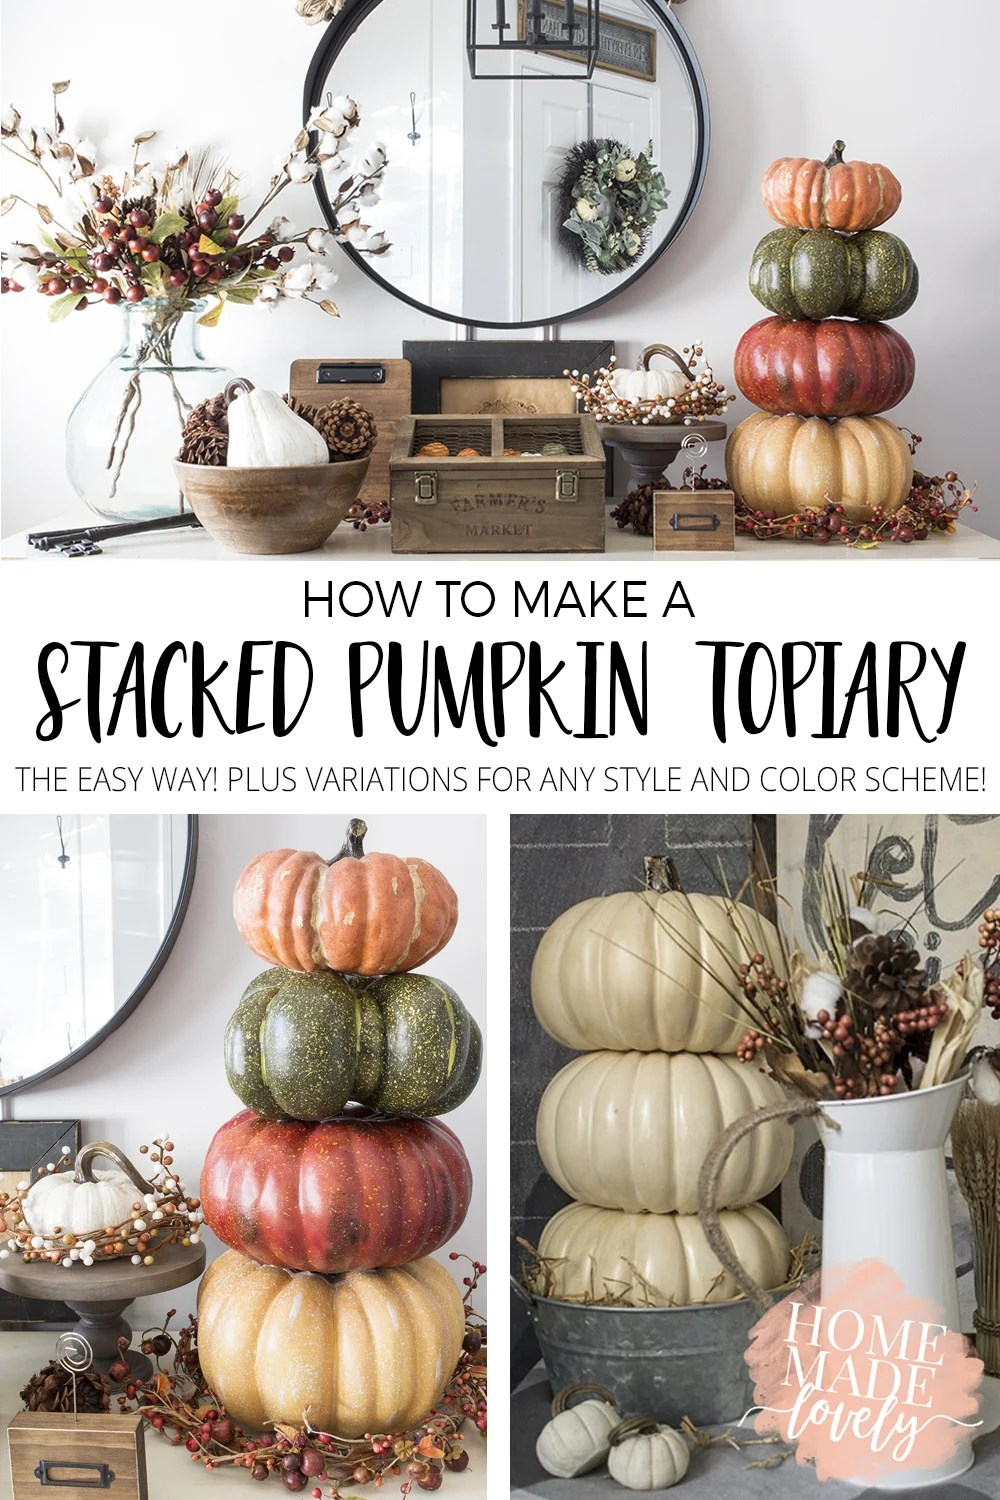 Learn how to make a stacked pumpkin topiary the easy way using faux pumpkins. Plus variations to suit whatever decor style or color scheme you like!